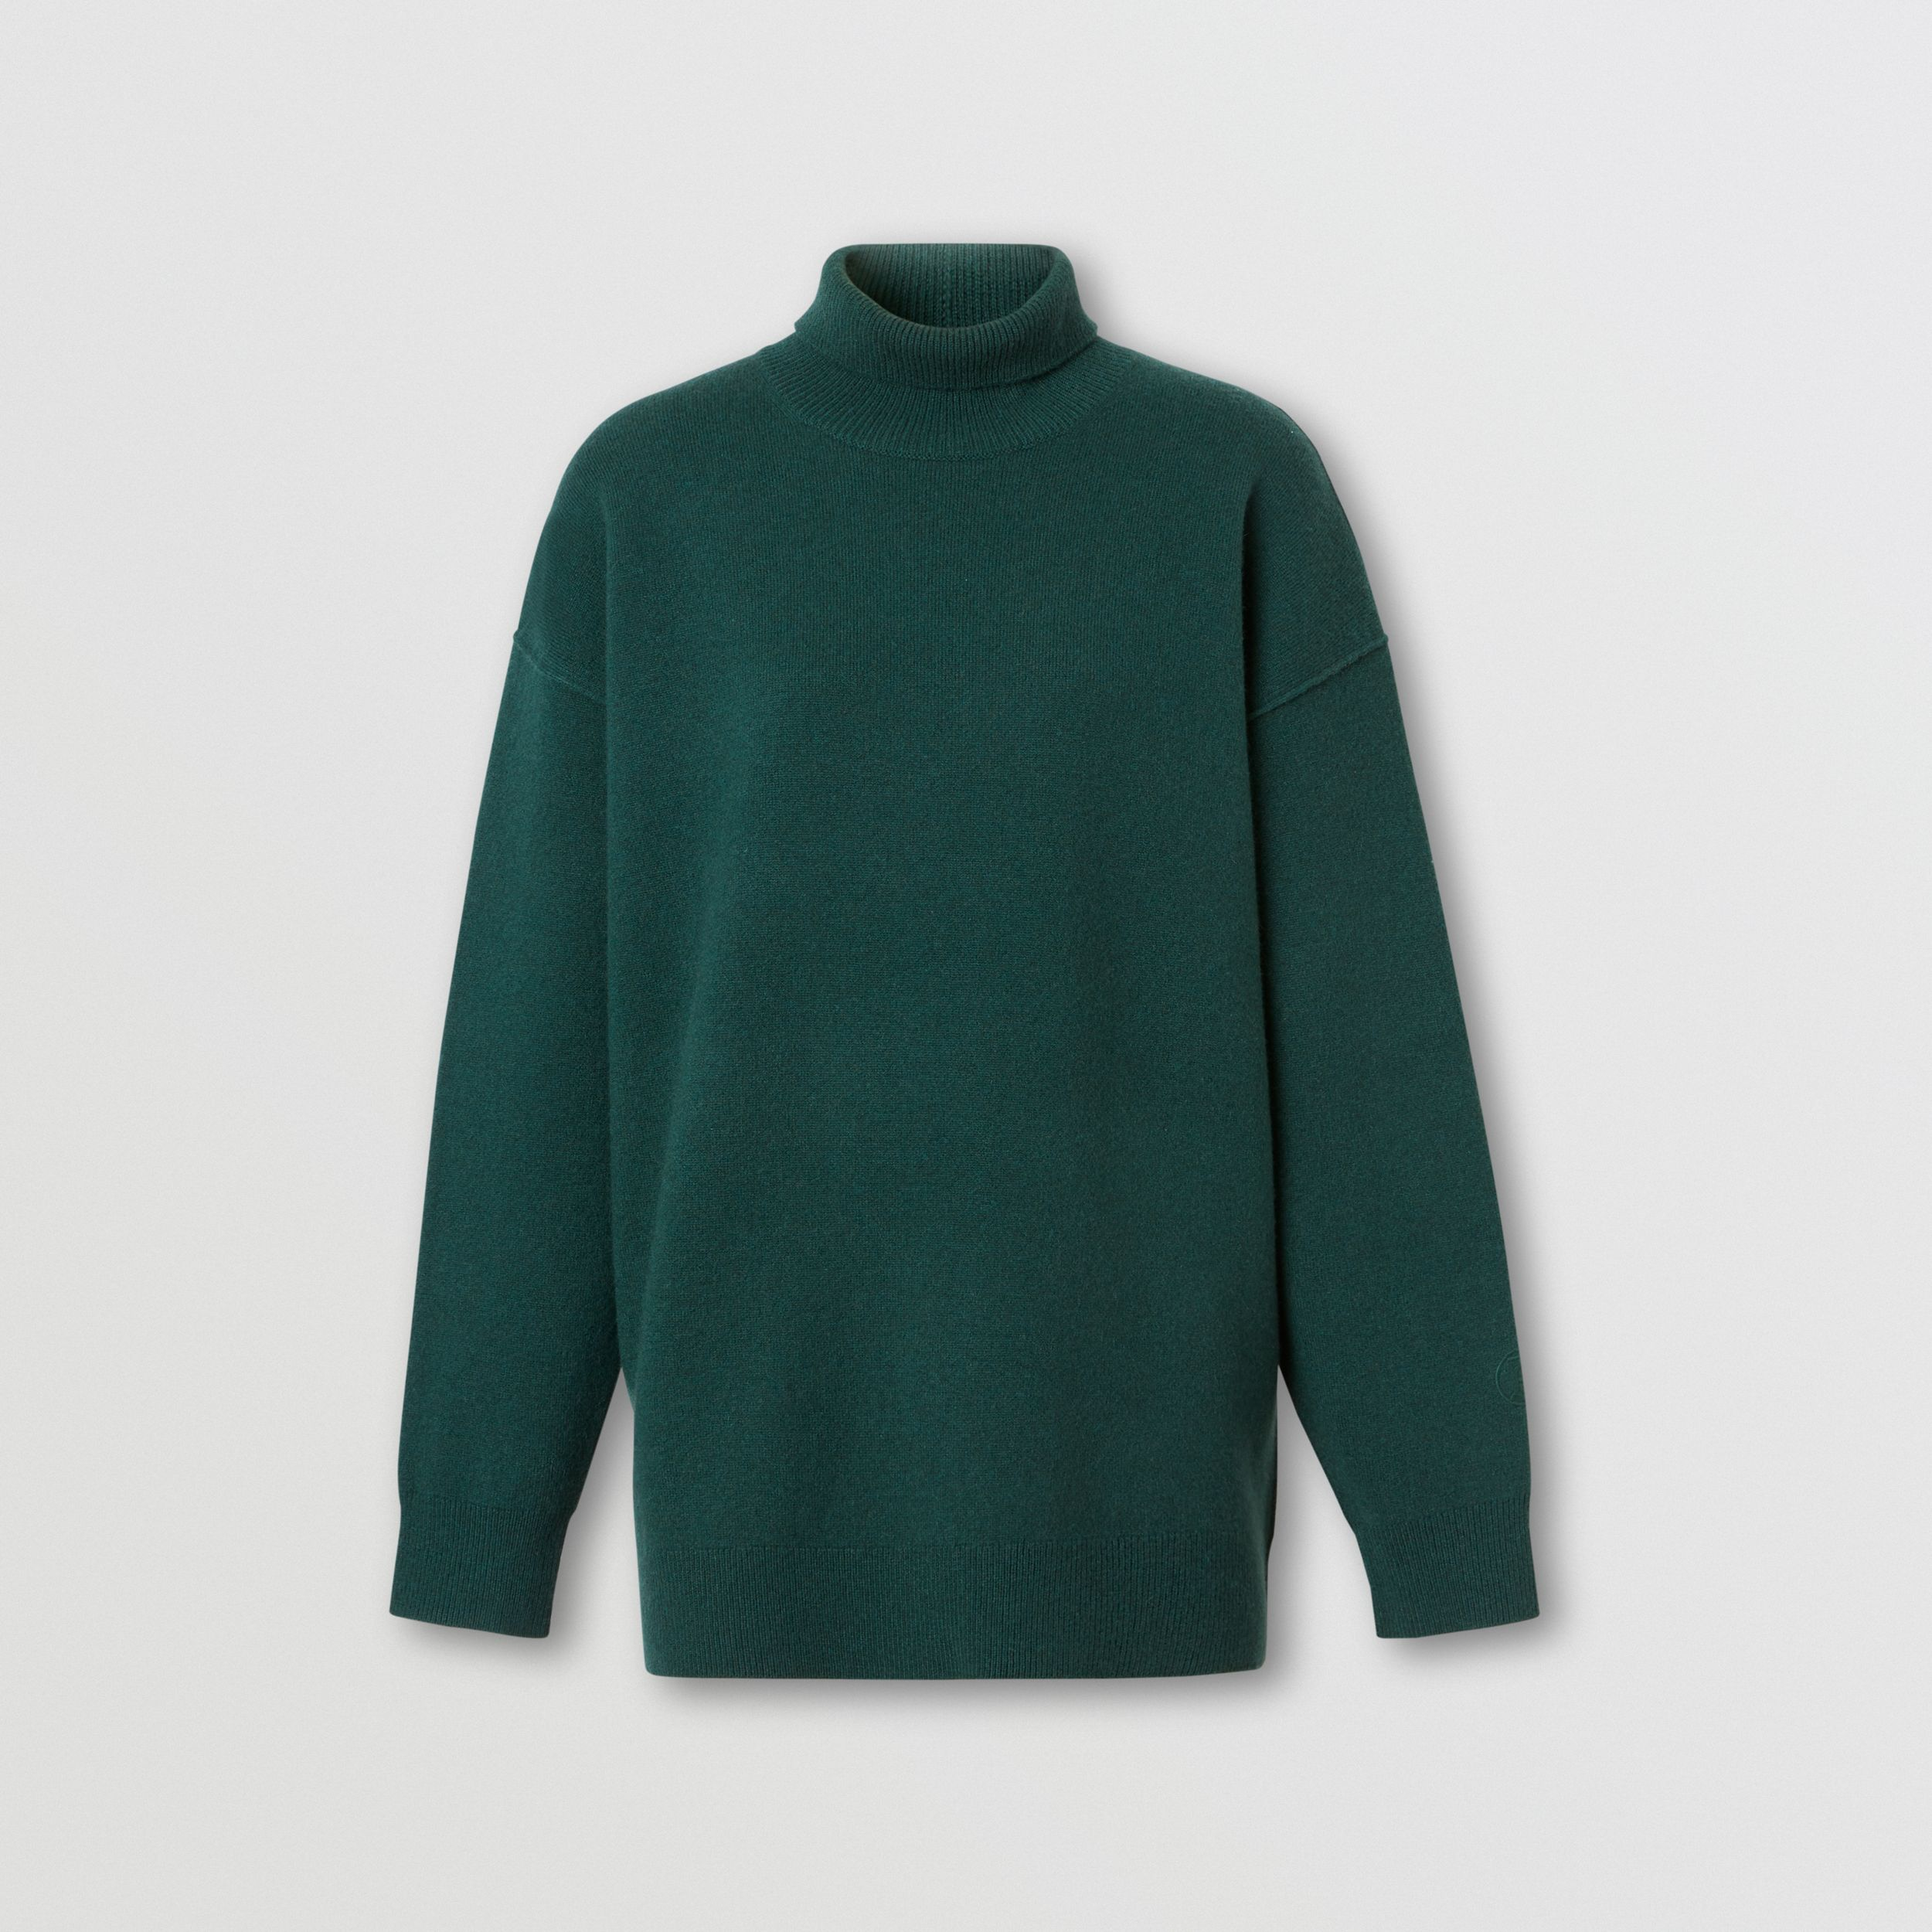 Monogram Motif Cashmere Blend Funnel Neck Sweater in Bottle Green - Women | Burberry - 4